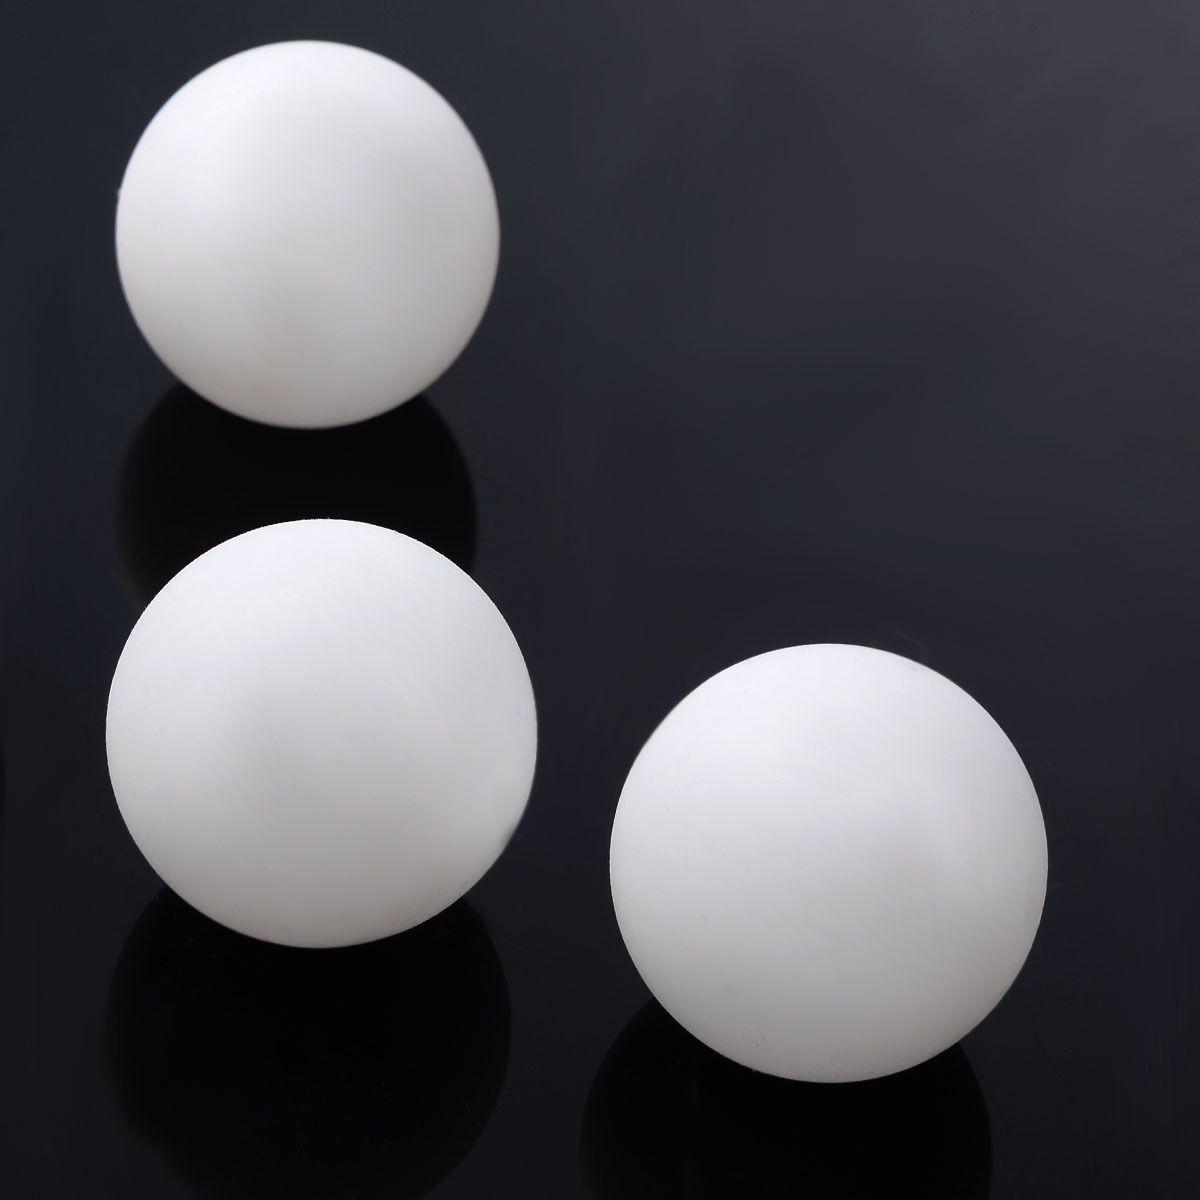 COLIBROX-Practice Ping Pong Balls,Pack of 144 Balls,Table Tennis Bee Ball Cainval Game Material: Celluloid Color: White / Orange (optional) Quantity: 100pcs Star rating: 3 star